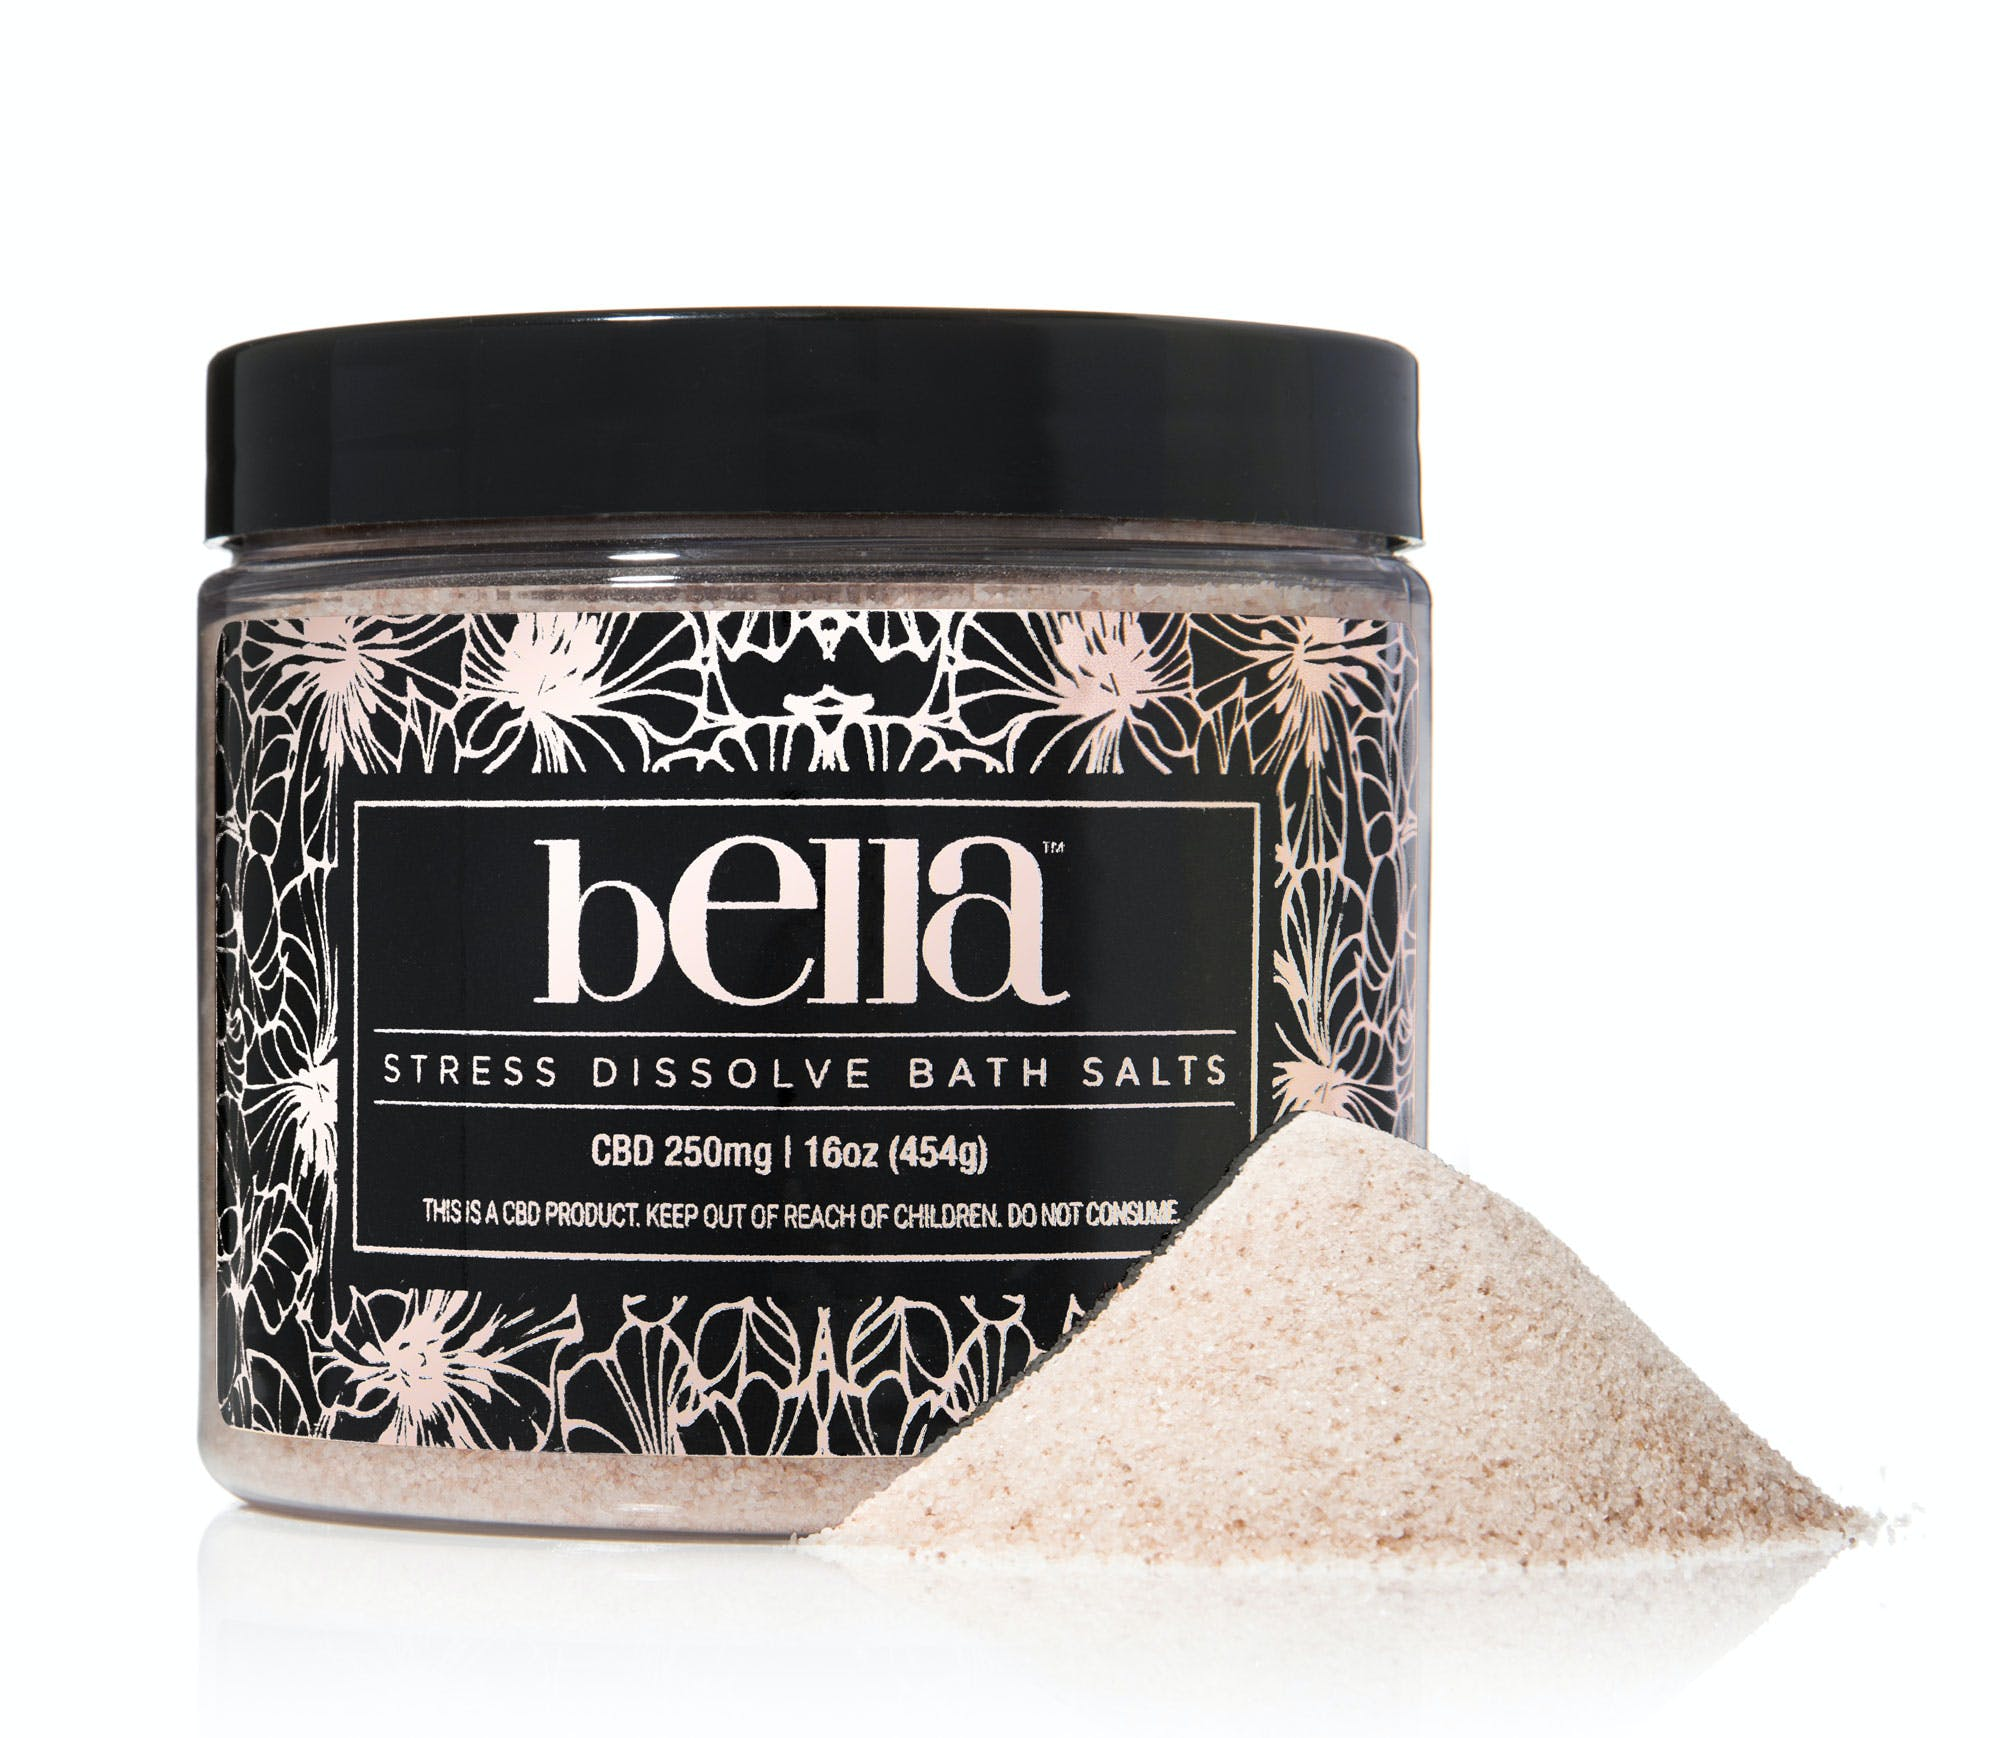 Bellabathsalt For The First Time, Thailand Seriously Considers Legalizing Medical Marijuana